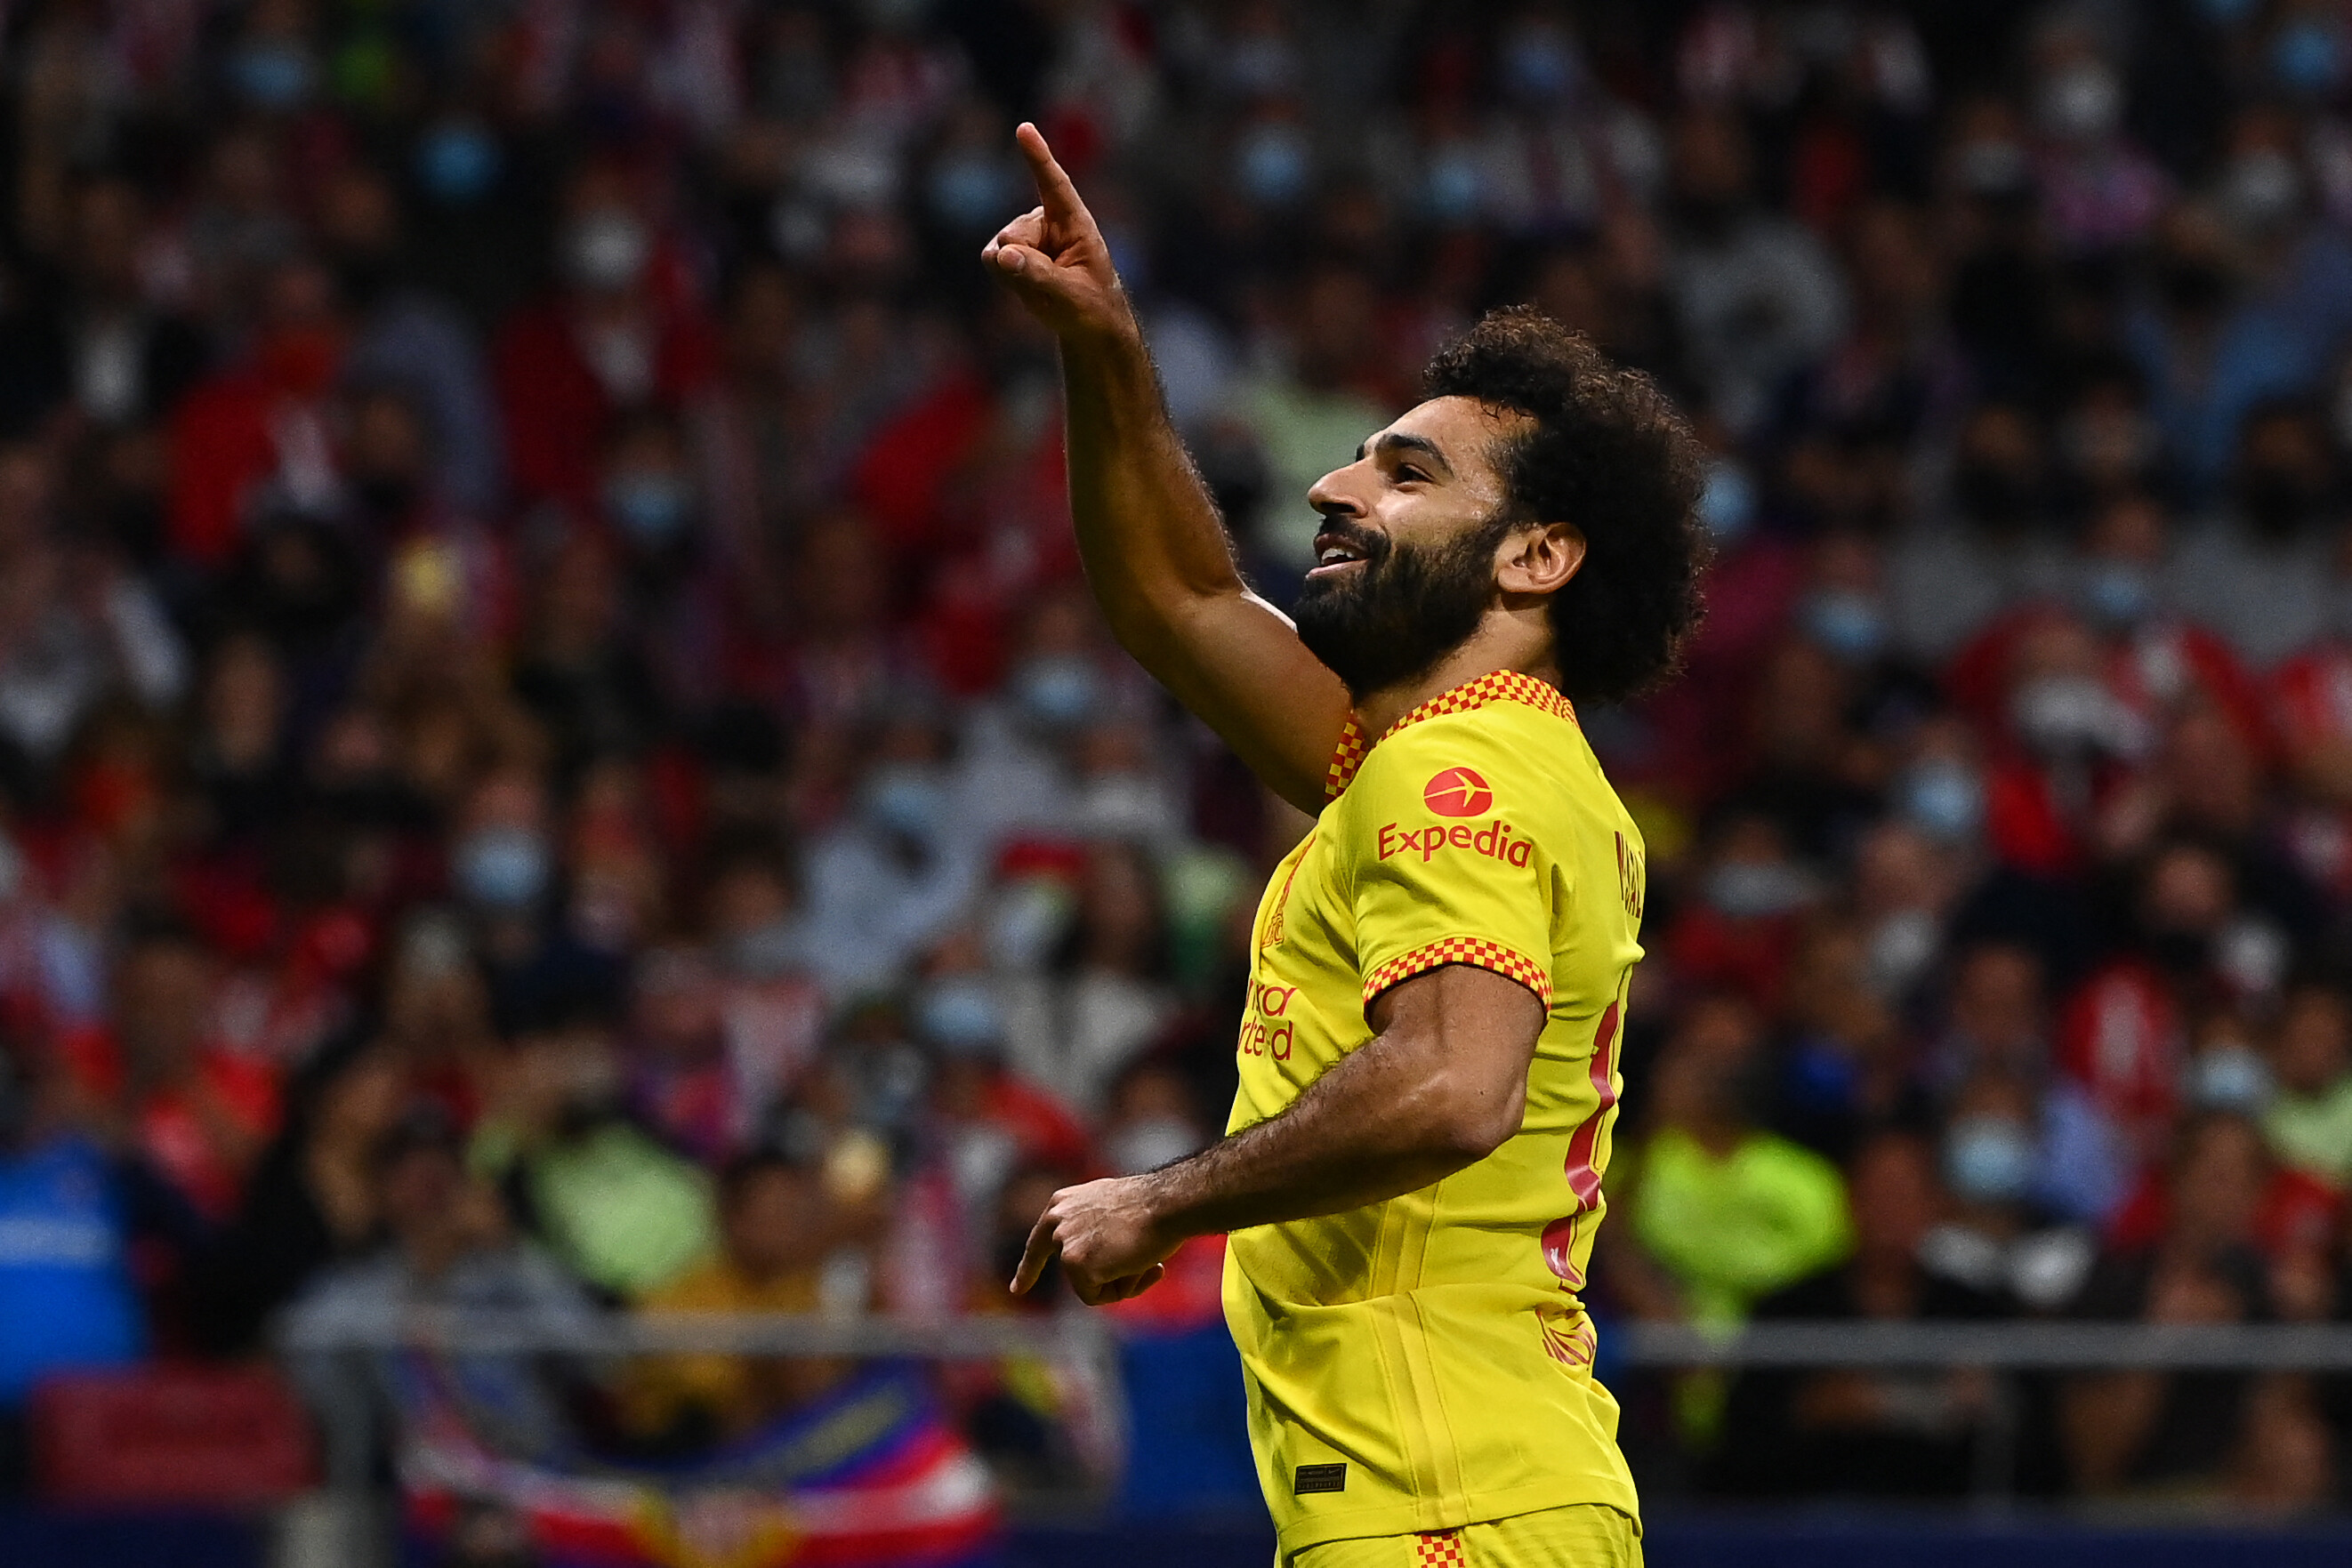 Champions League: Liverpool edges 10-man Atletico Madrid in five-goal thriller